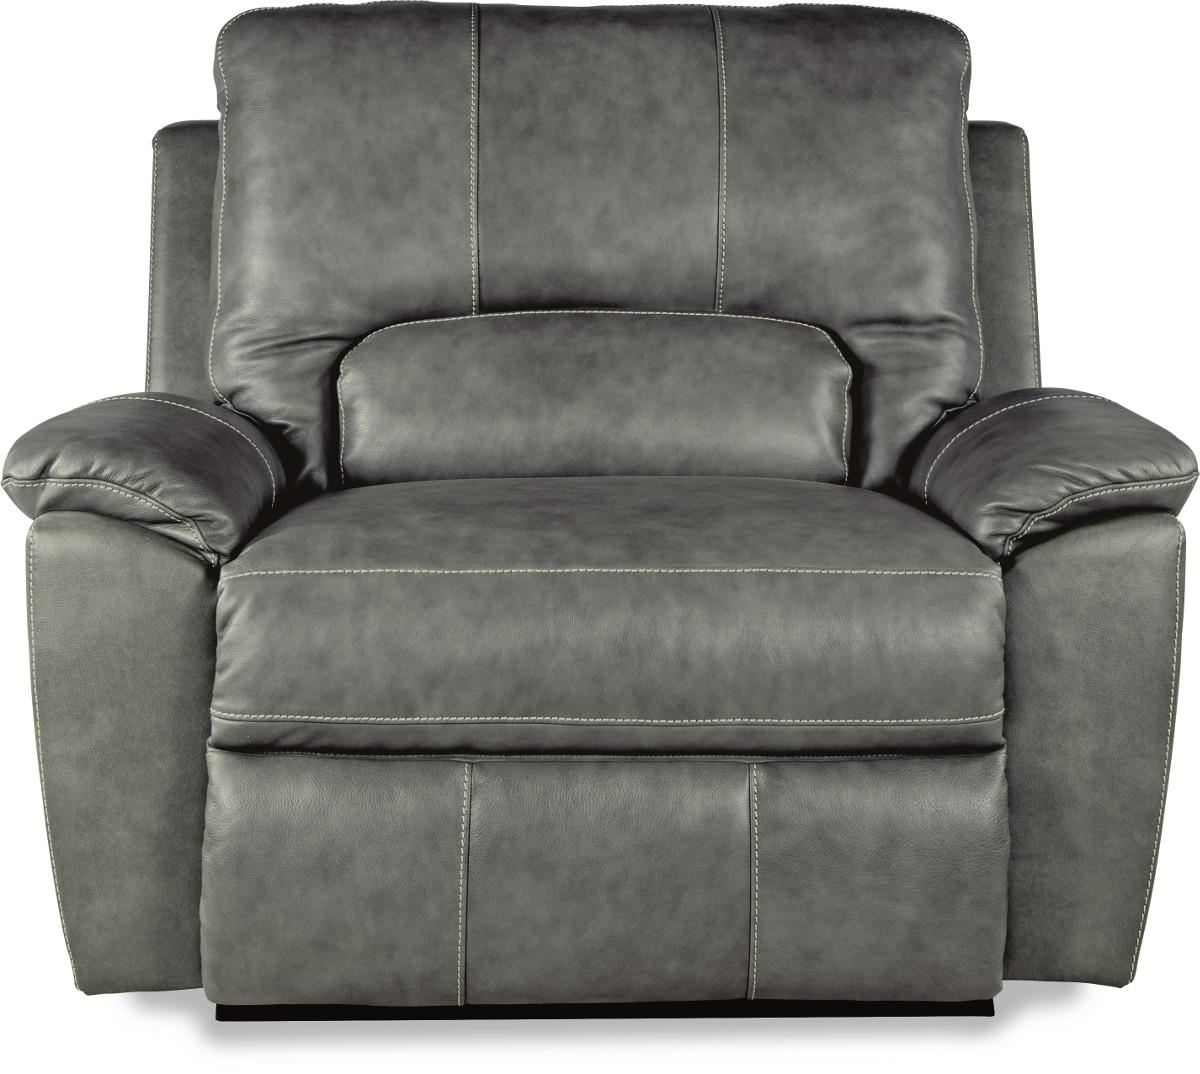 La-Z-Boy Charger Power La-Z-Time® Recliner - Item Number: 41P725LB127054